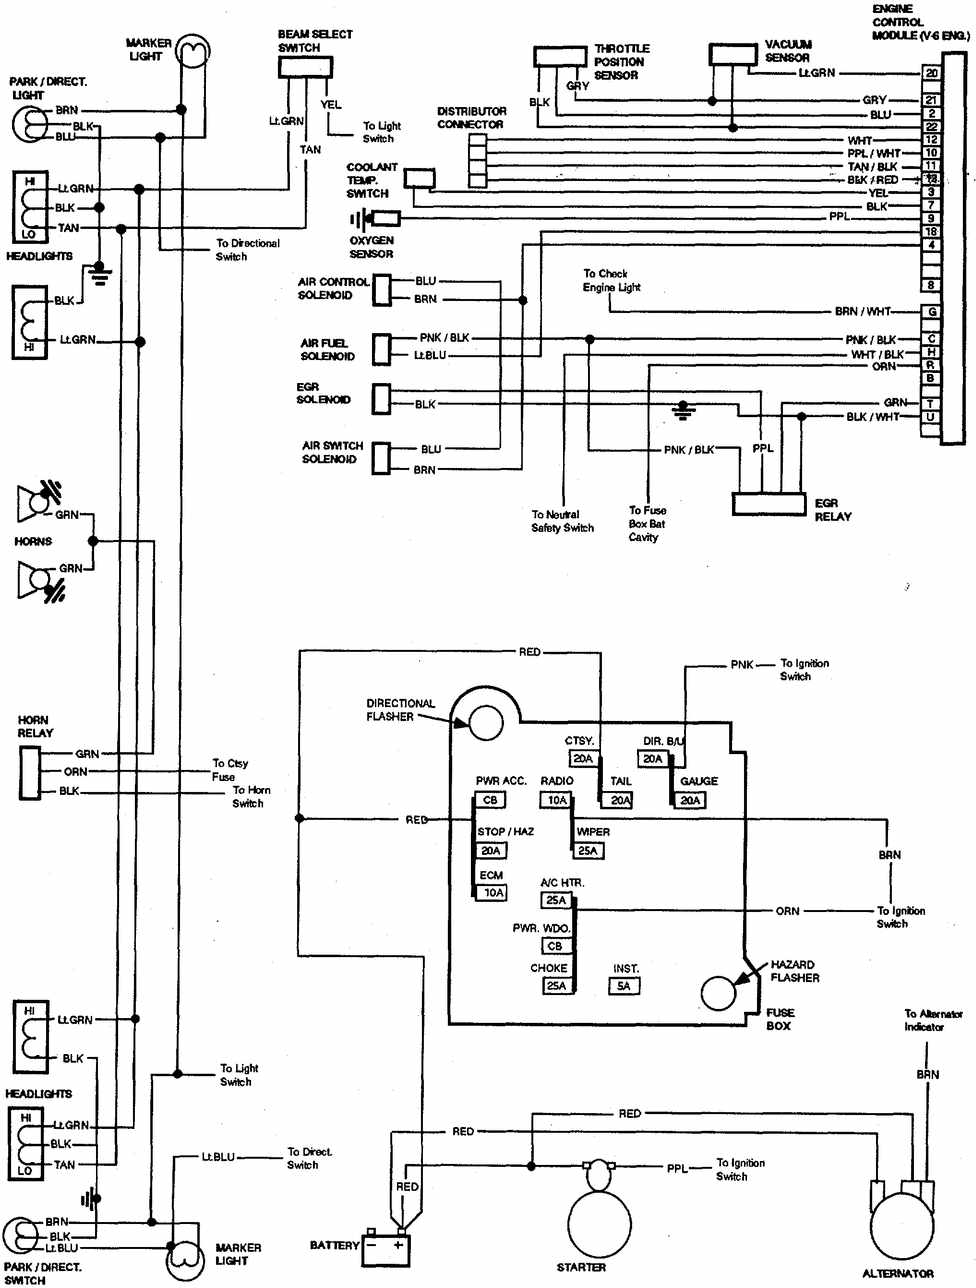 Chevrolet V Trucks Electrical Wiring Diagram